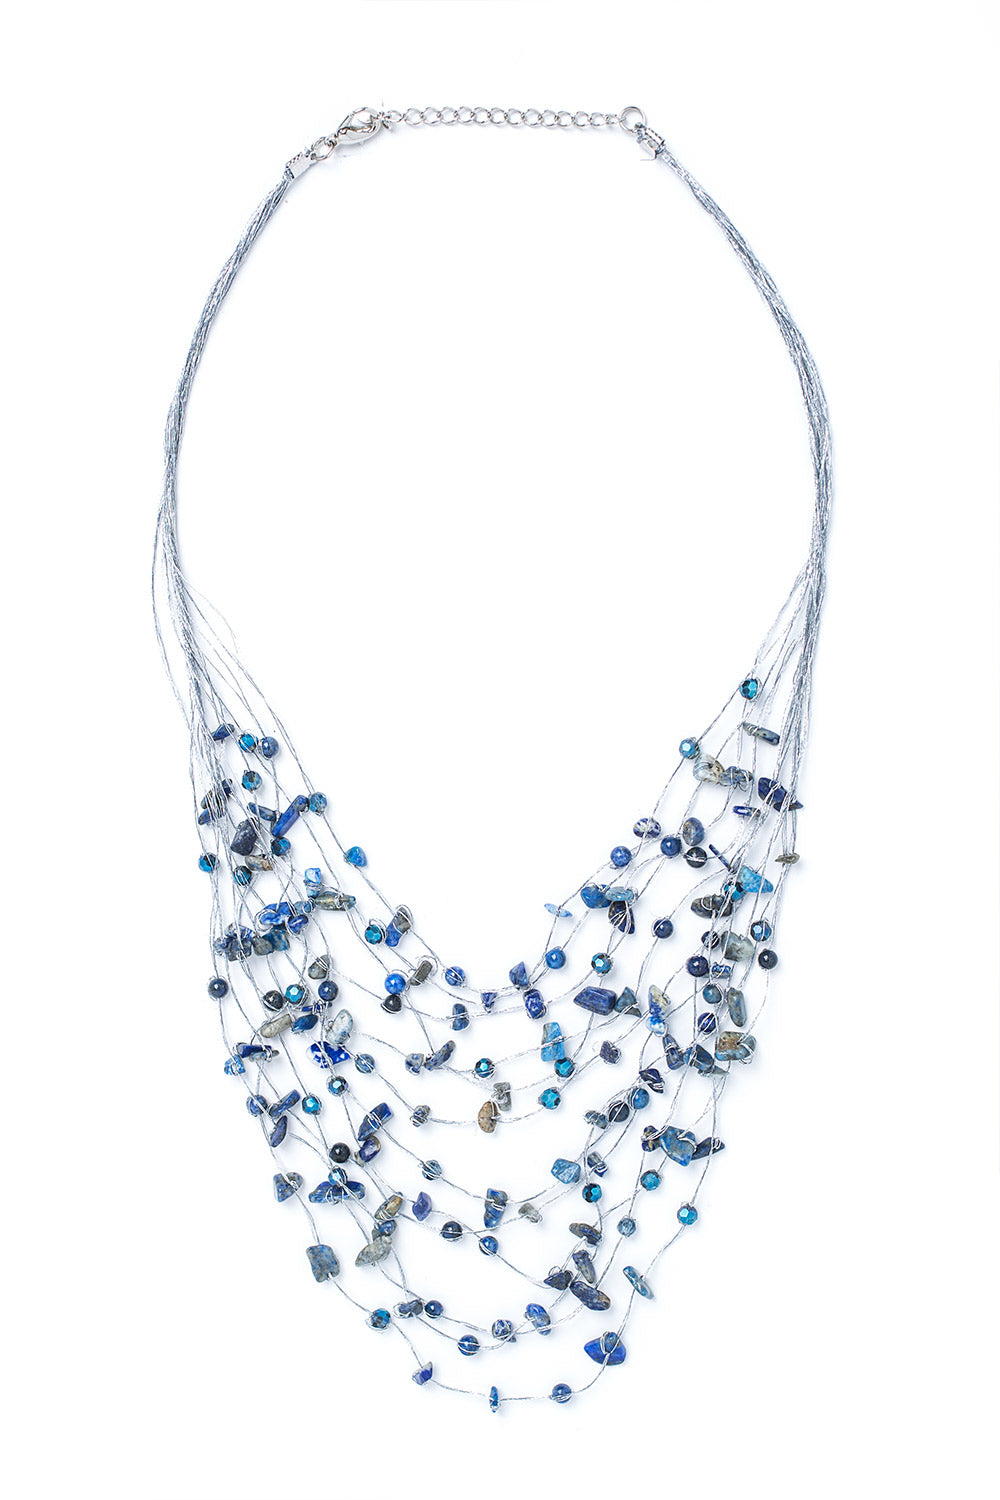 Type 2 Silken Strands Necklace